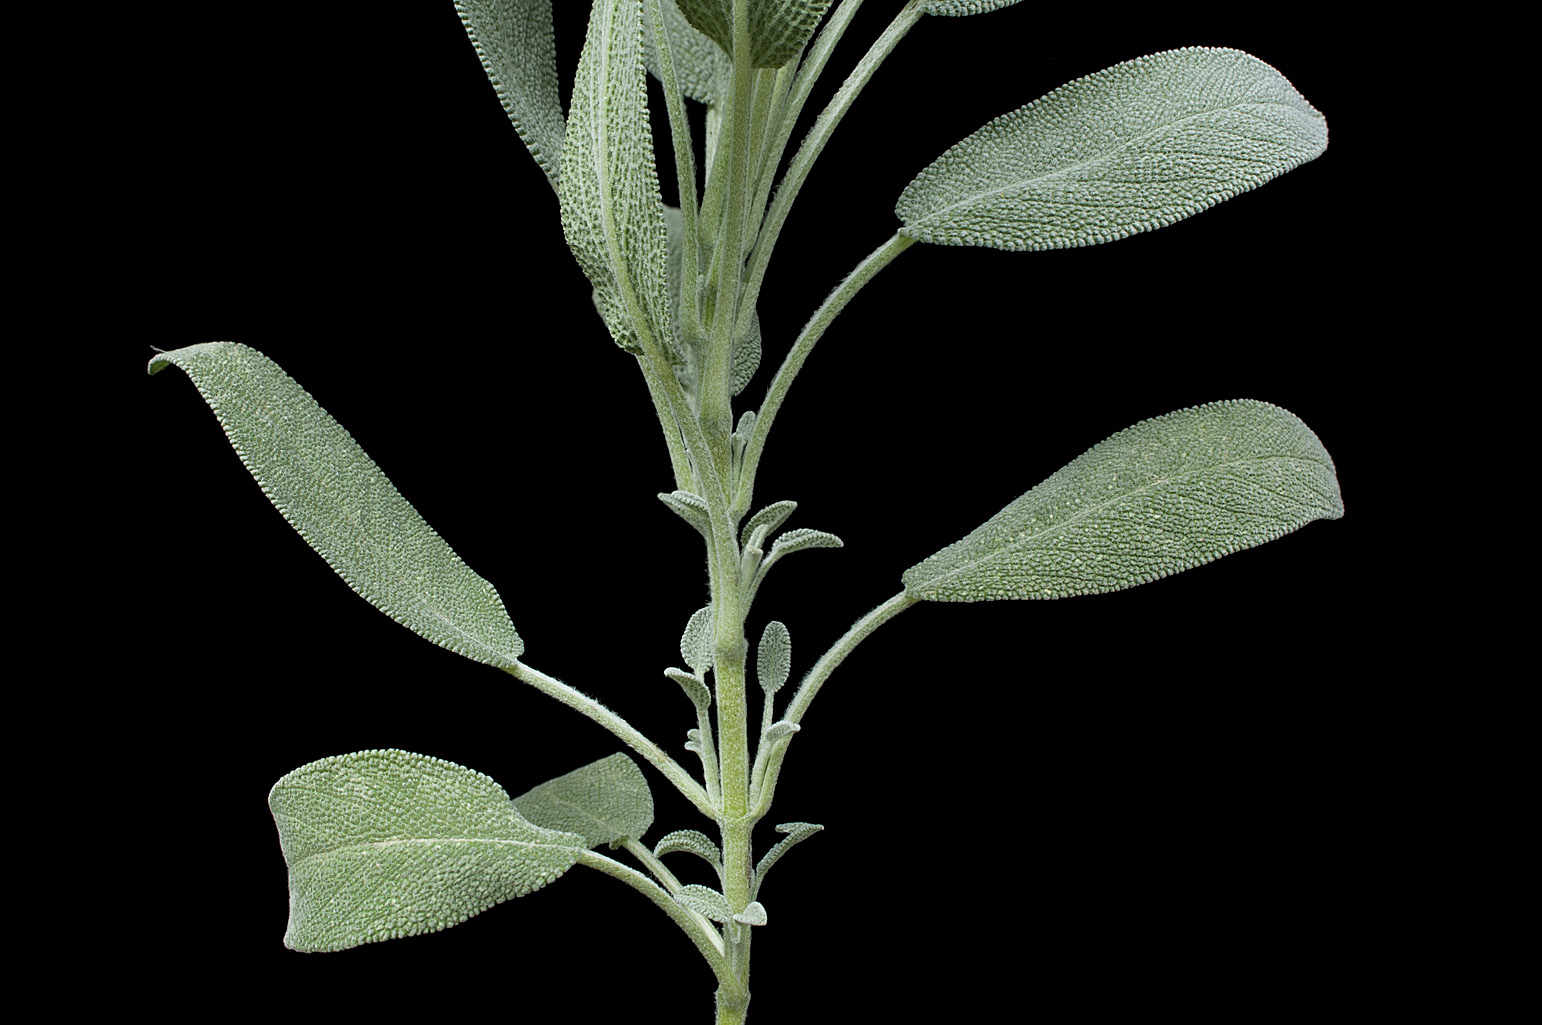 Square branch with simple, opposite, decussate leaves